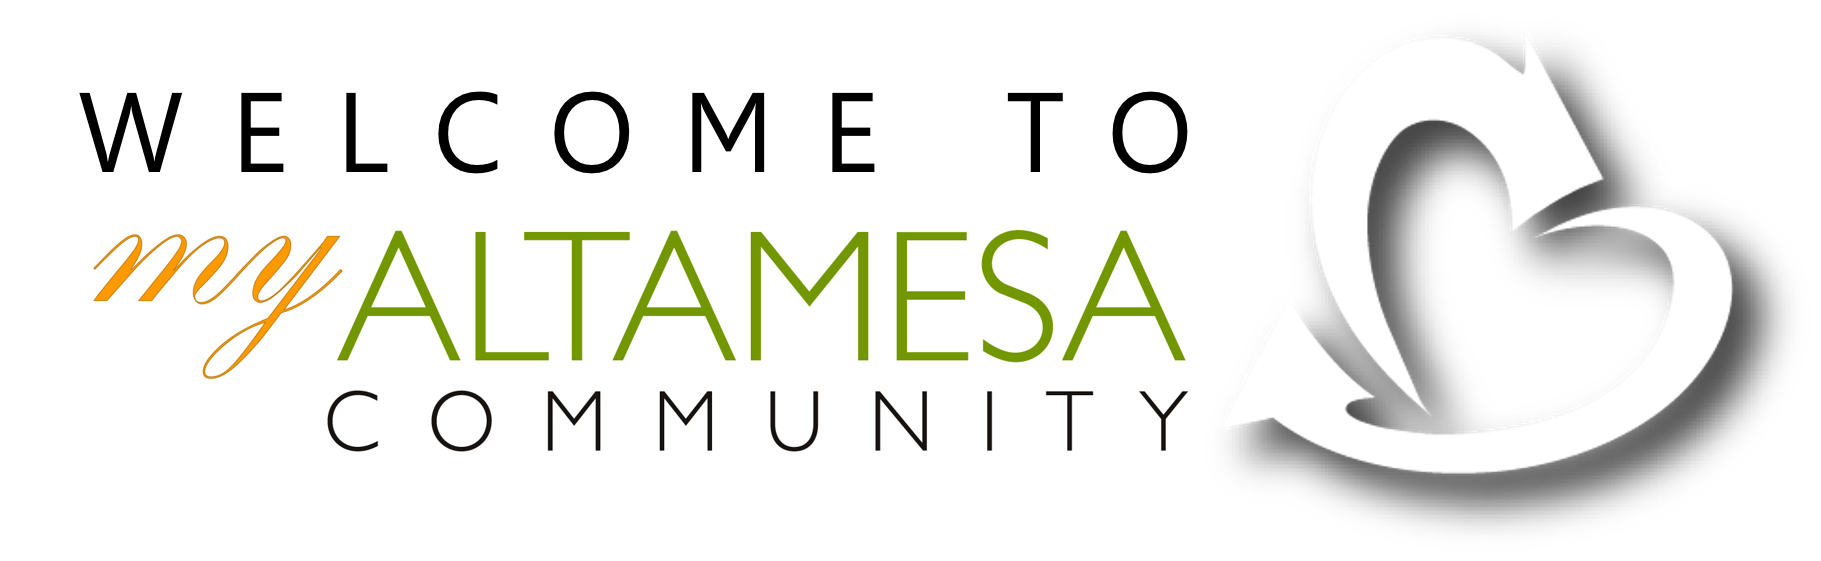 Welcome to myAltamesa Community